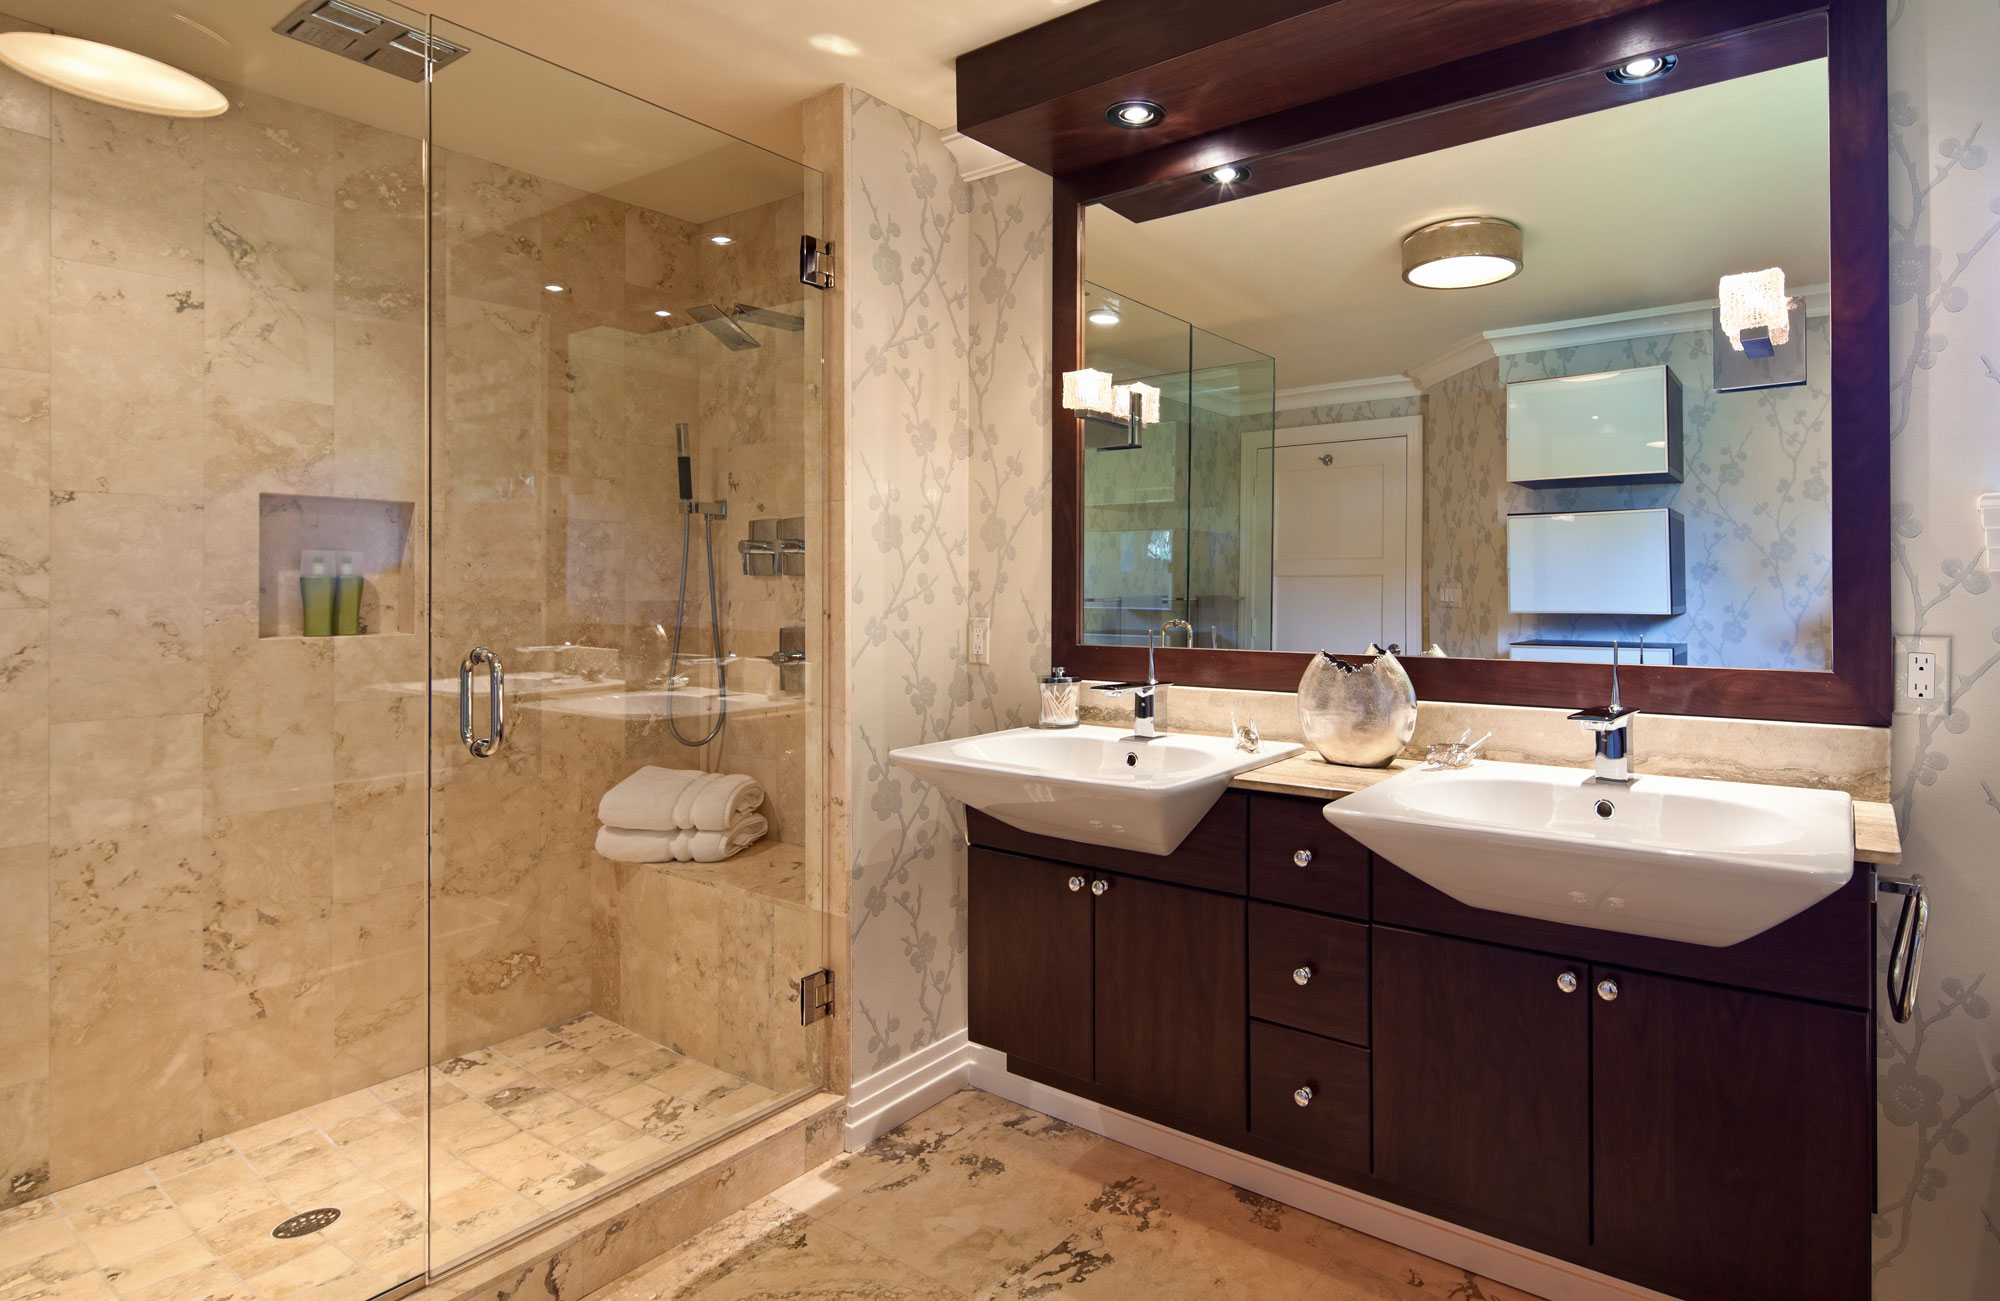 Bathroom remodeling contractor los angeles free for Bathroom remodeling contractor los angeles